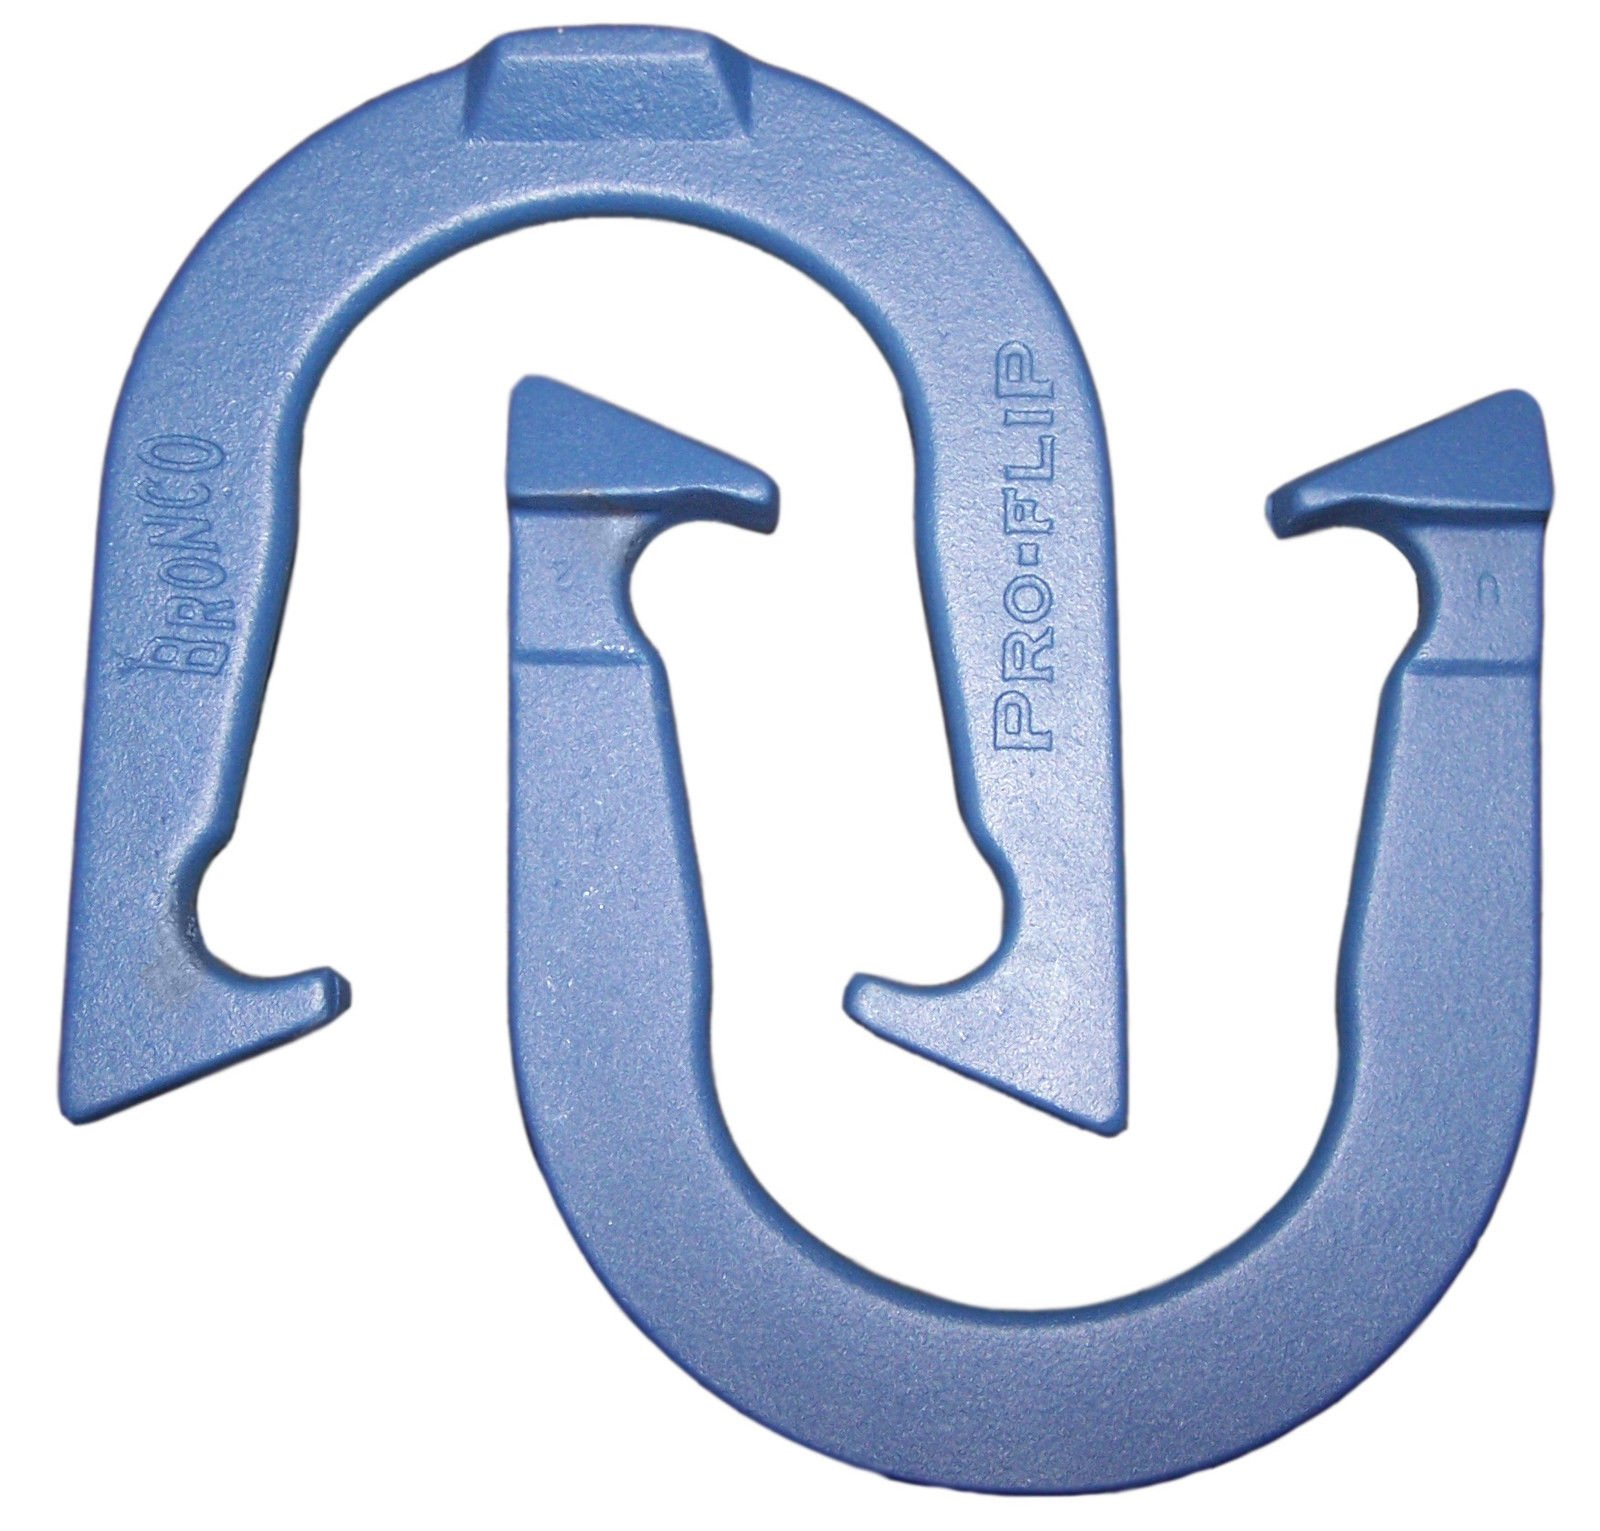 Bronco Pro-Flip Professional Pitching Horseshoes- made in USA! (Blue- Single Pair (2 shoes))